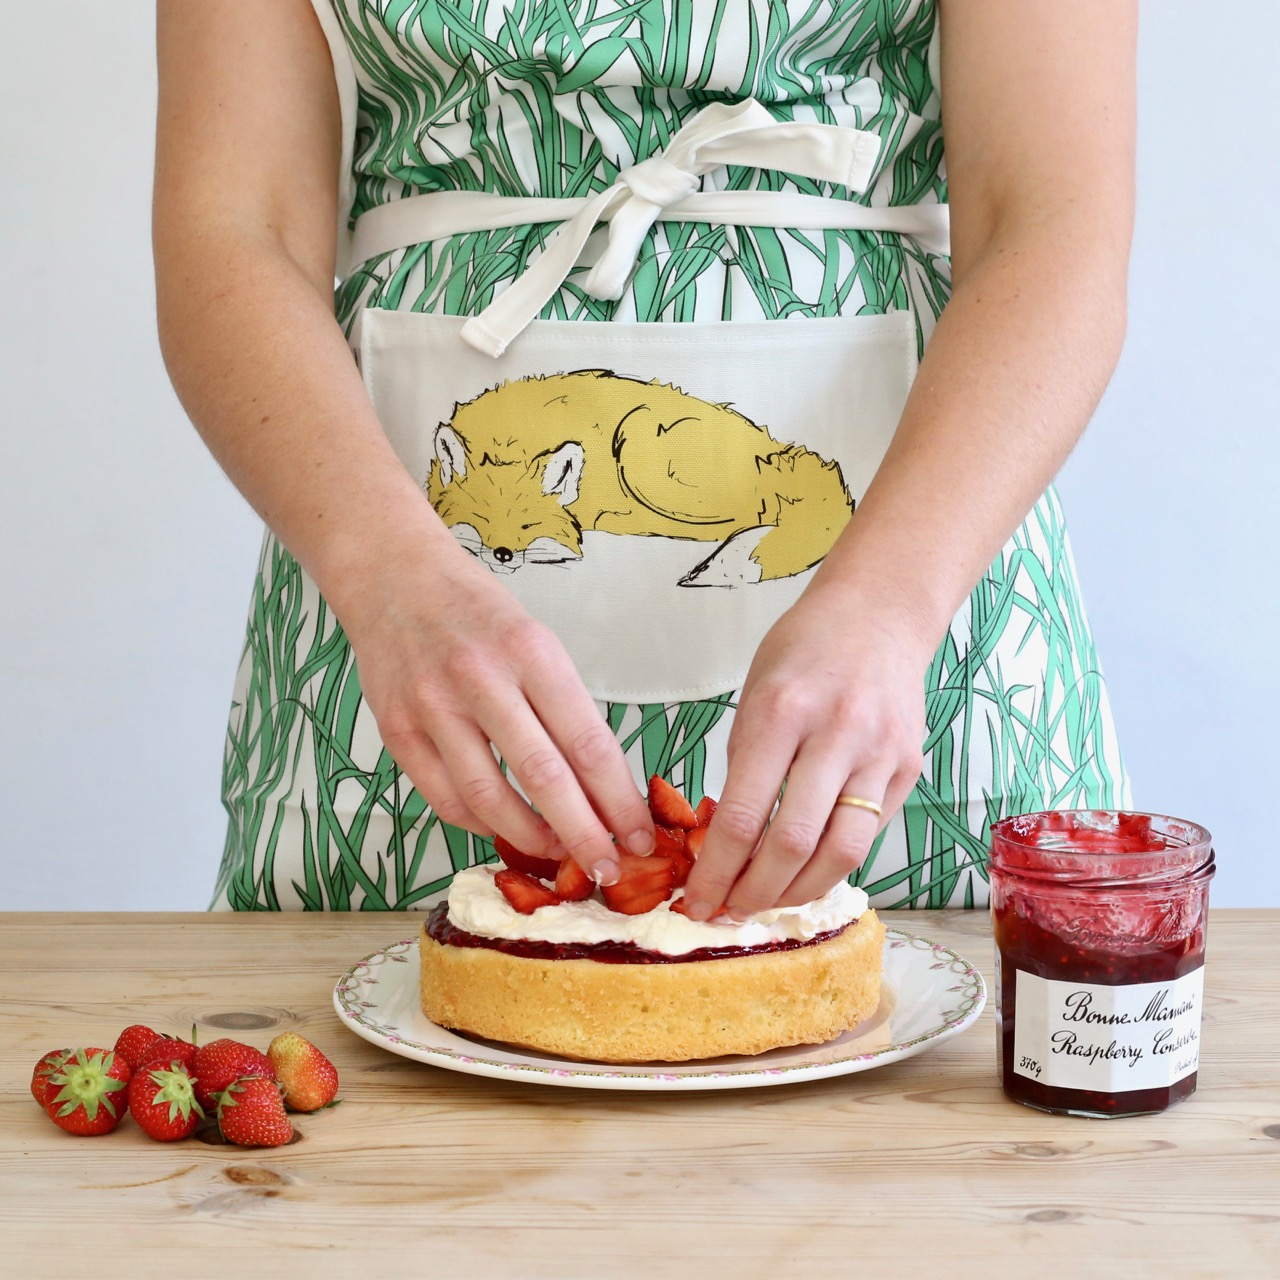 Roo-tid fox apron and Victoria sandwich